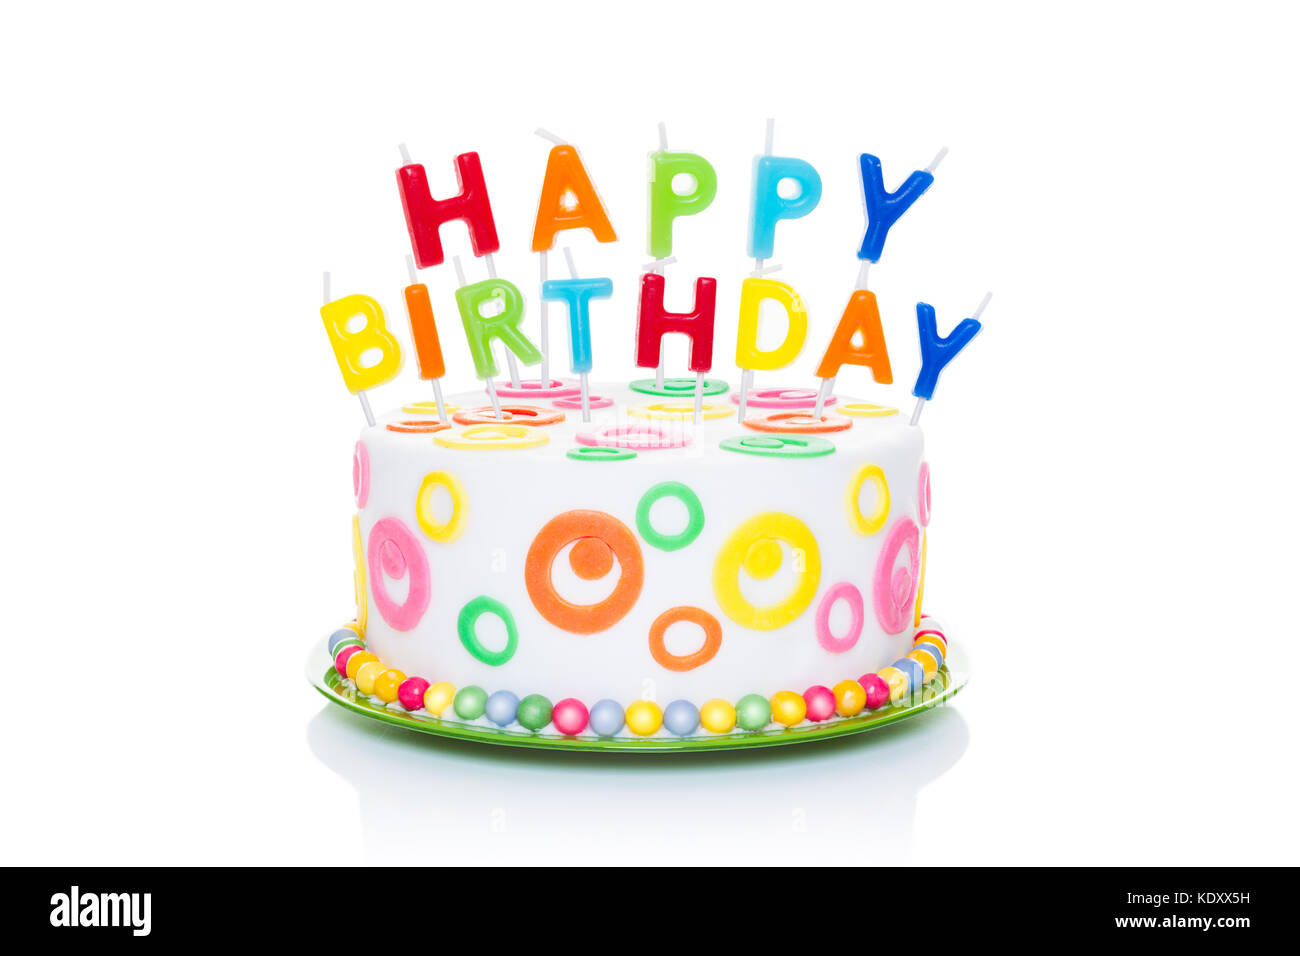 happy birthday cake or tart with happy birthday letters as candles very colorful and looking very tasty isolated on white background